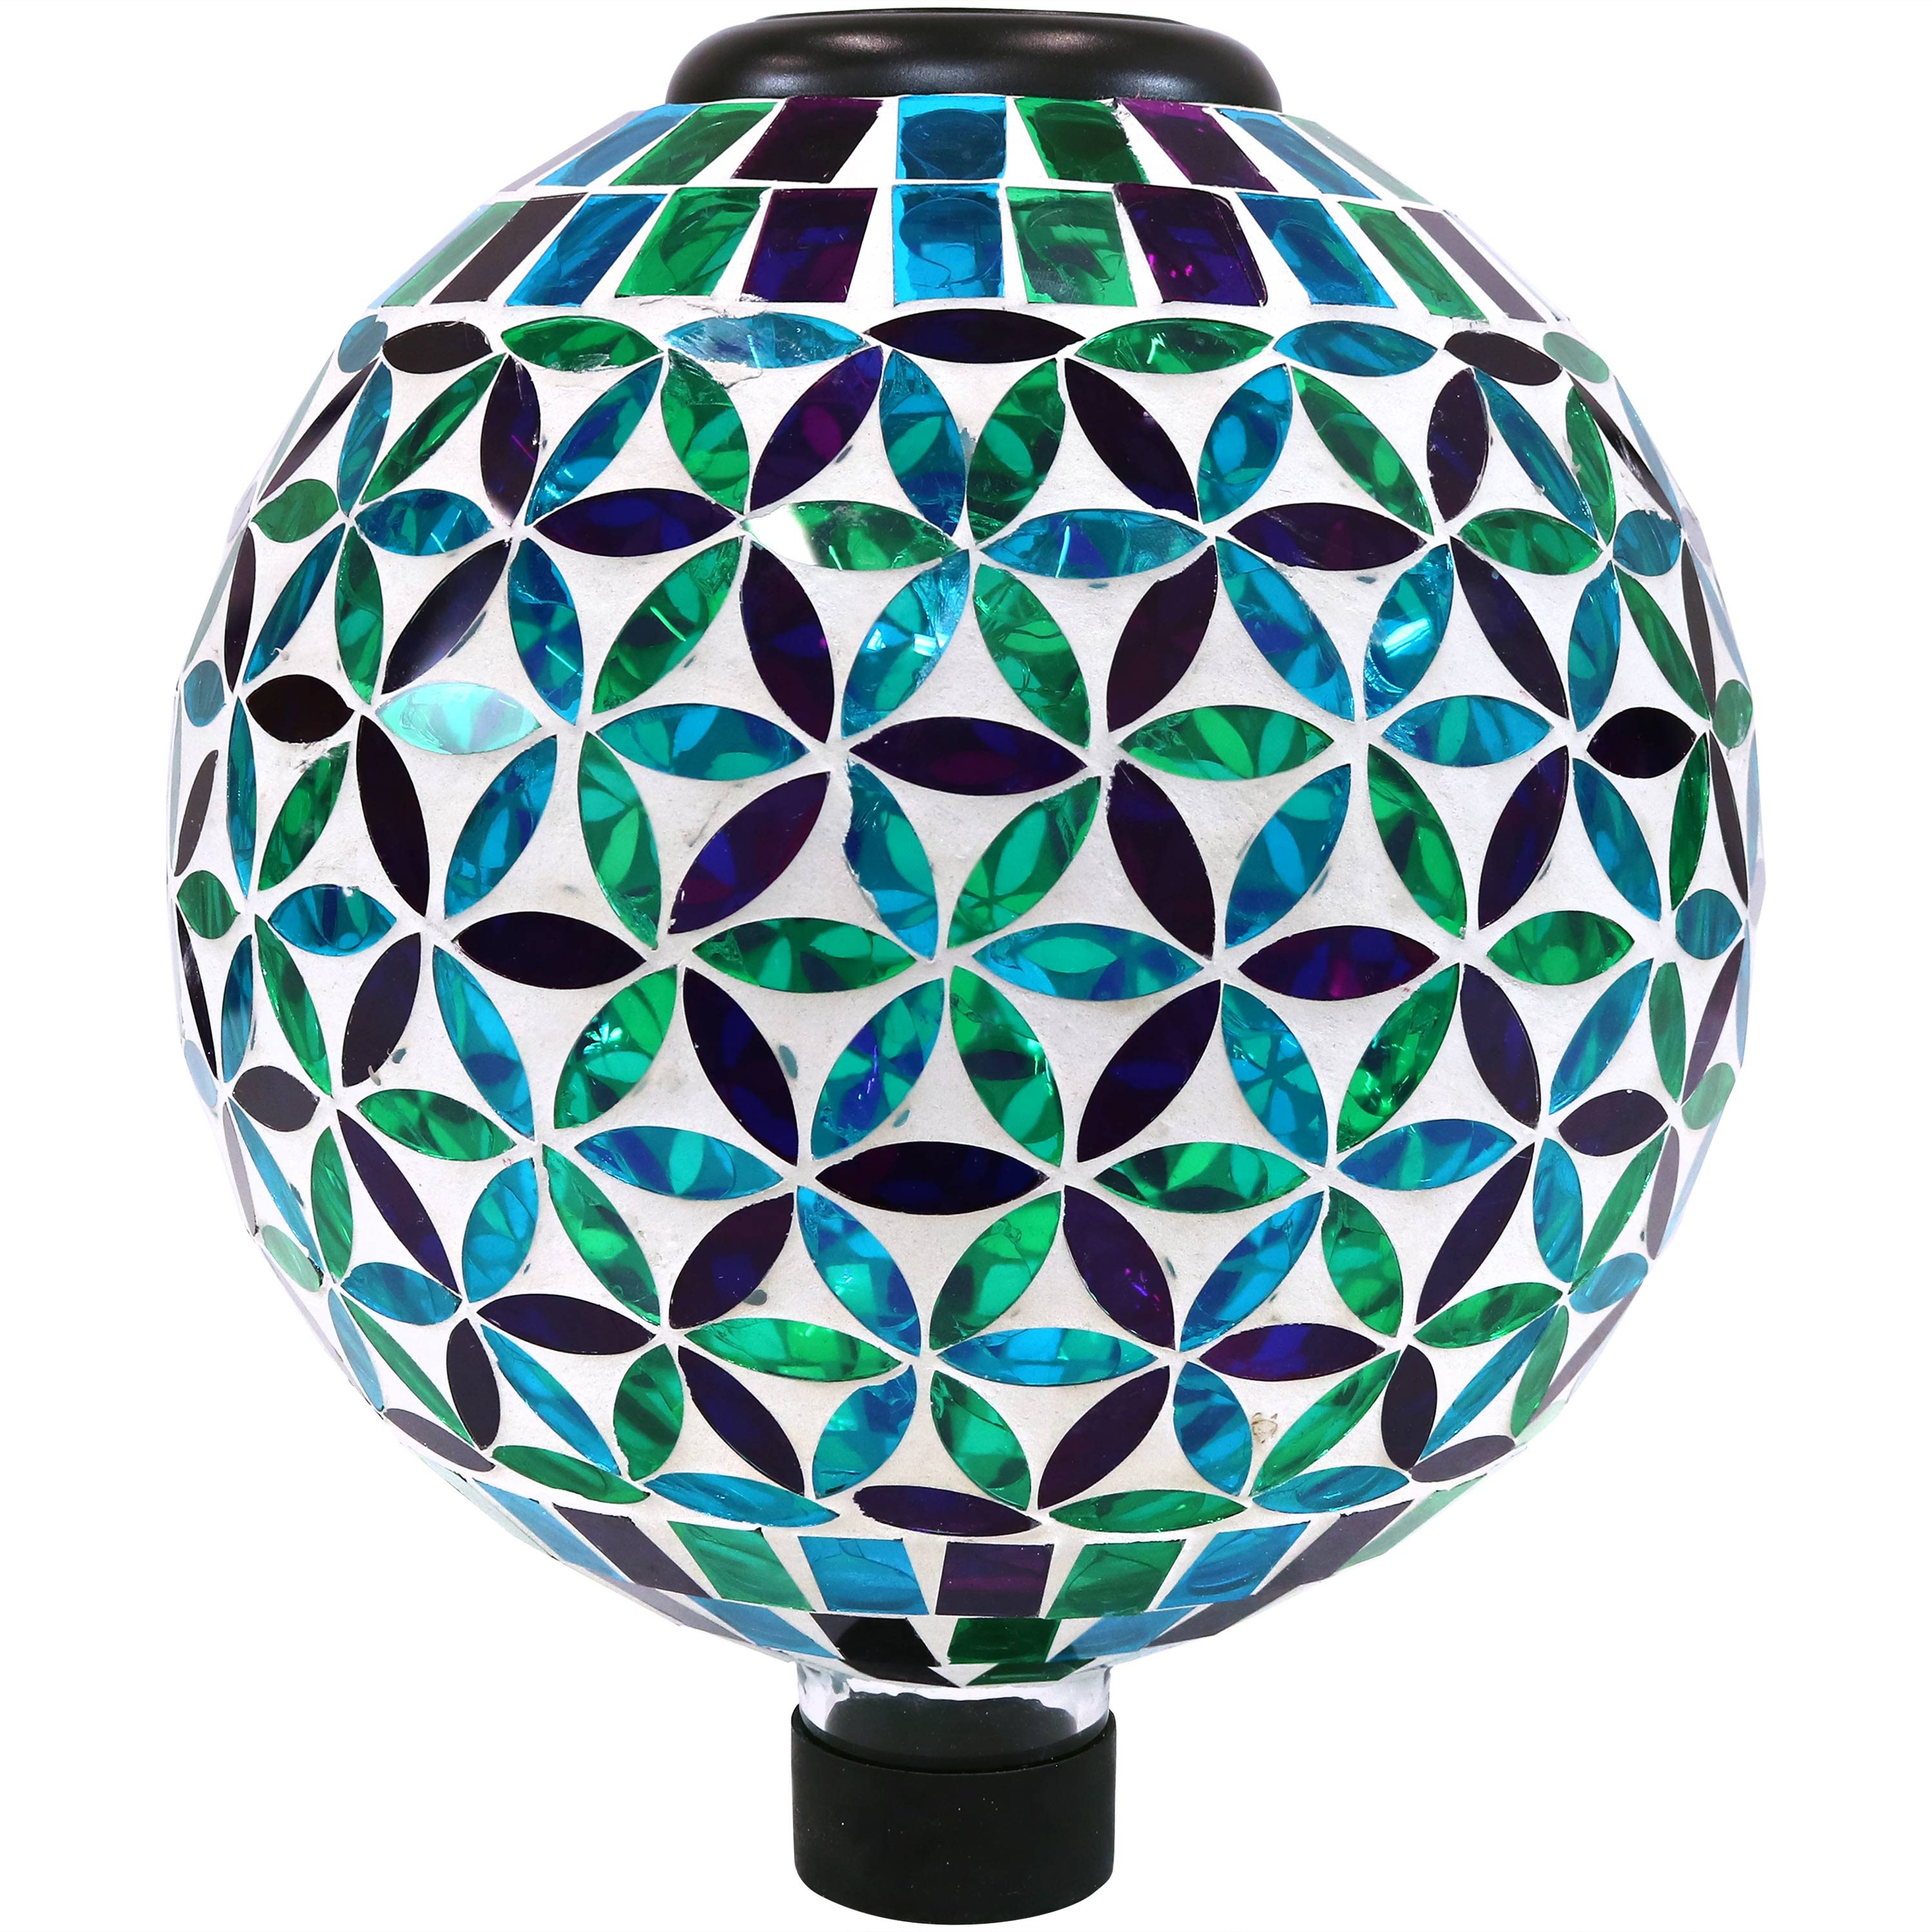 Sunnydaze Glass Mosaic Gazing Globe with Solar Light, Blue Cool Blooms Design, Garden and Landscape Decor, 10-Inch